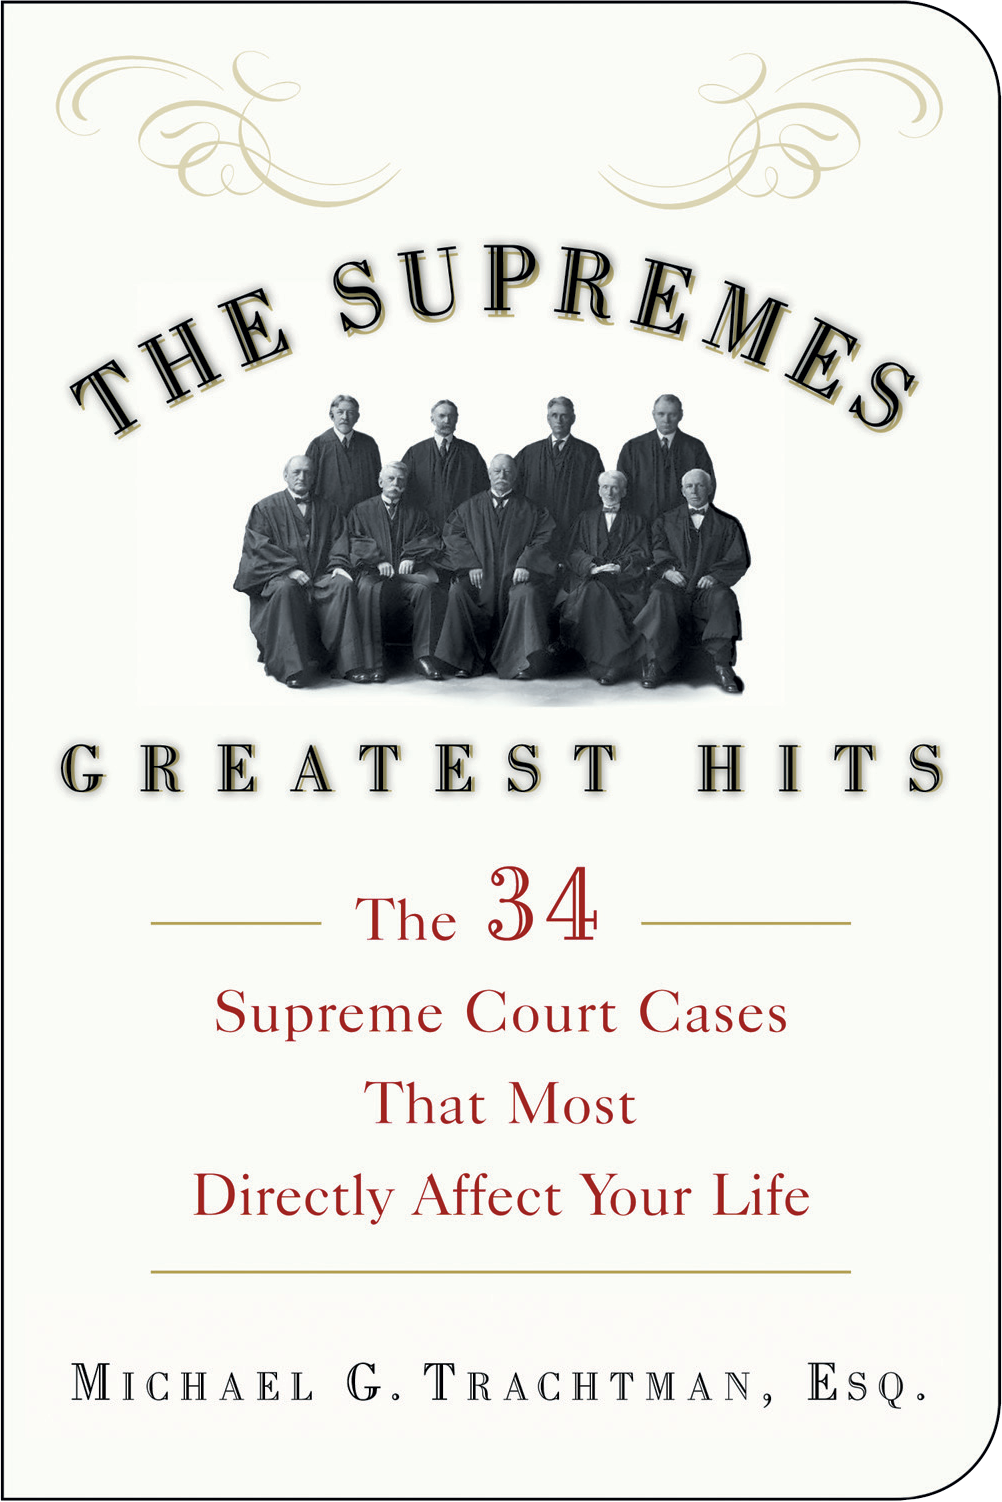 THE-SUPREMES-GREATEST-HITS-ss6.png